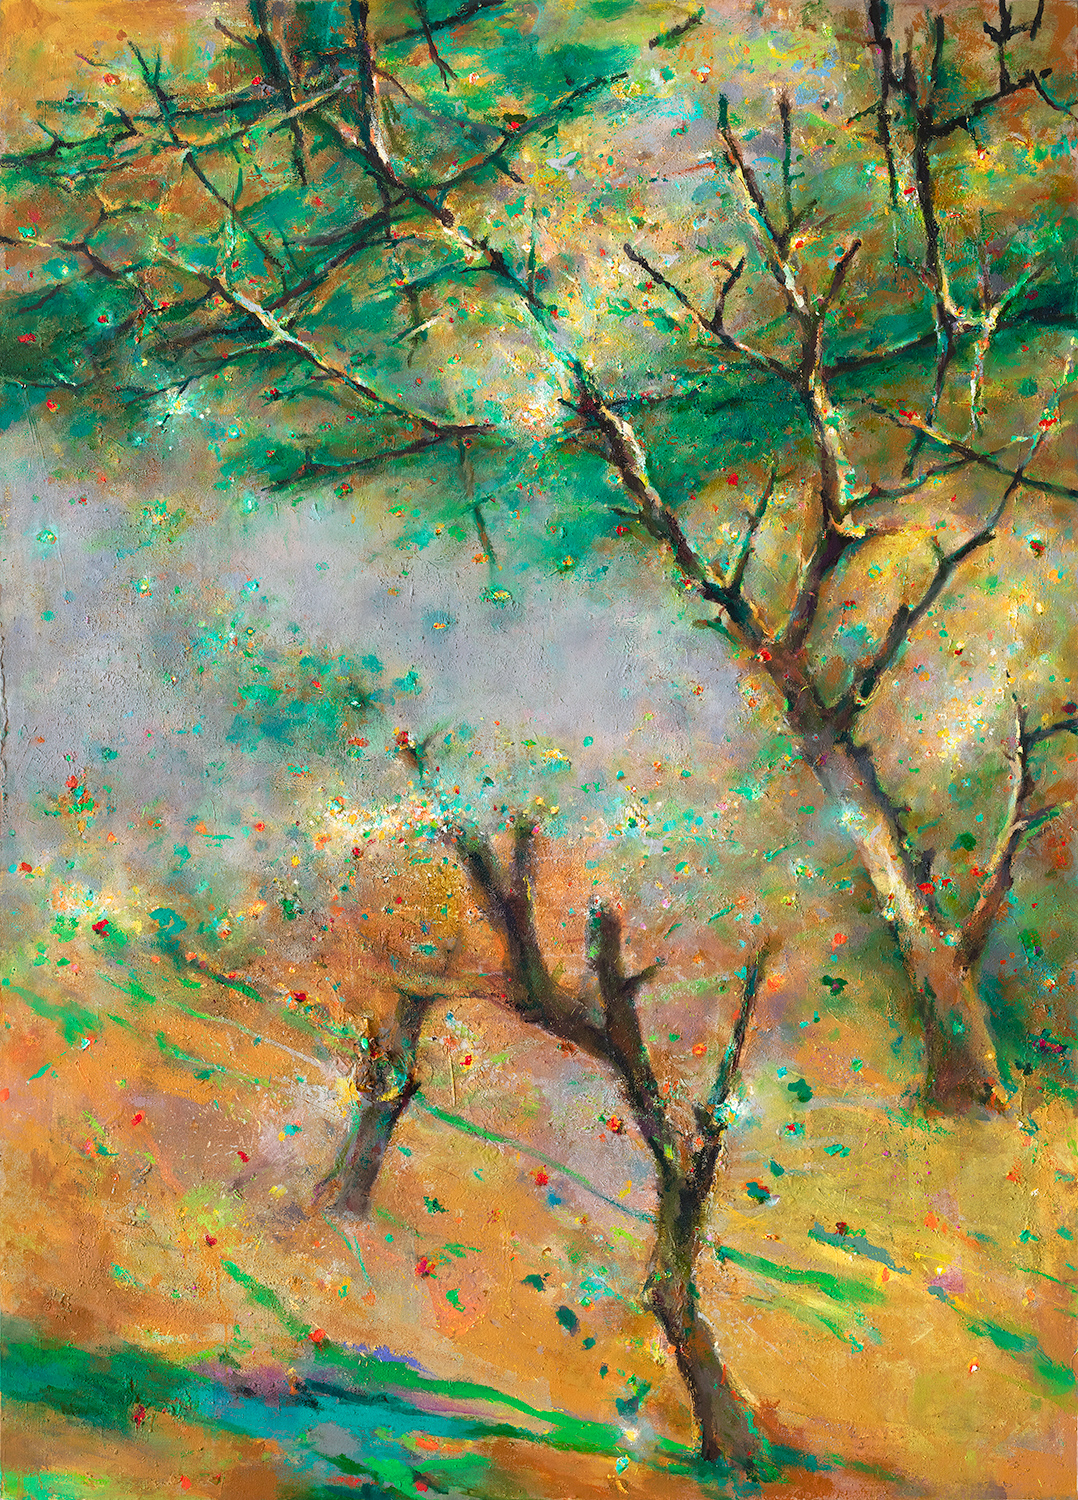 Early Summer Treescape  2010-16, 229 x 168 cm